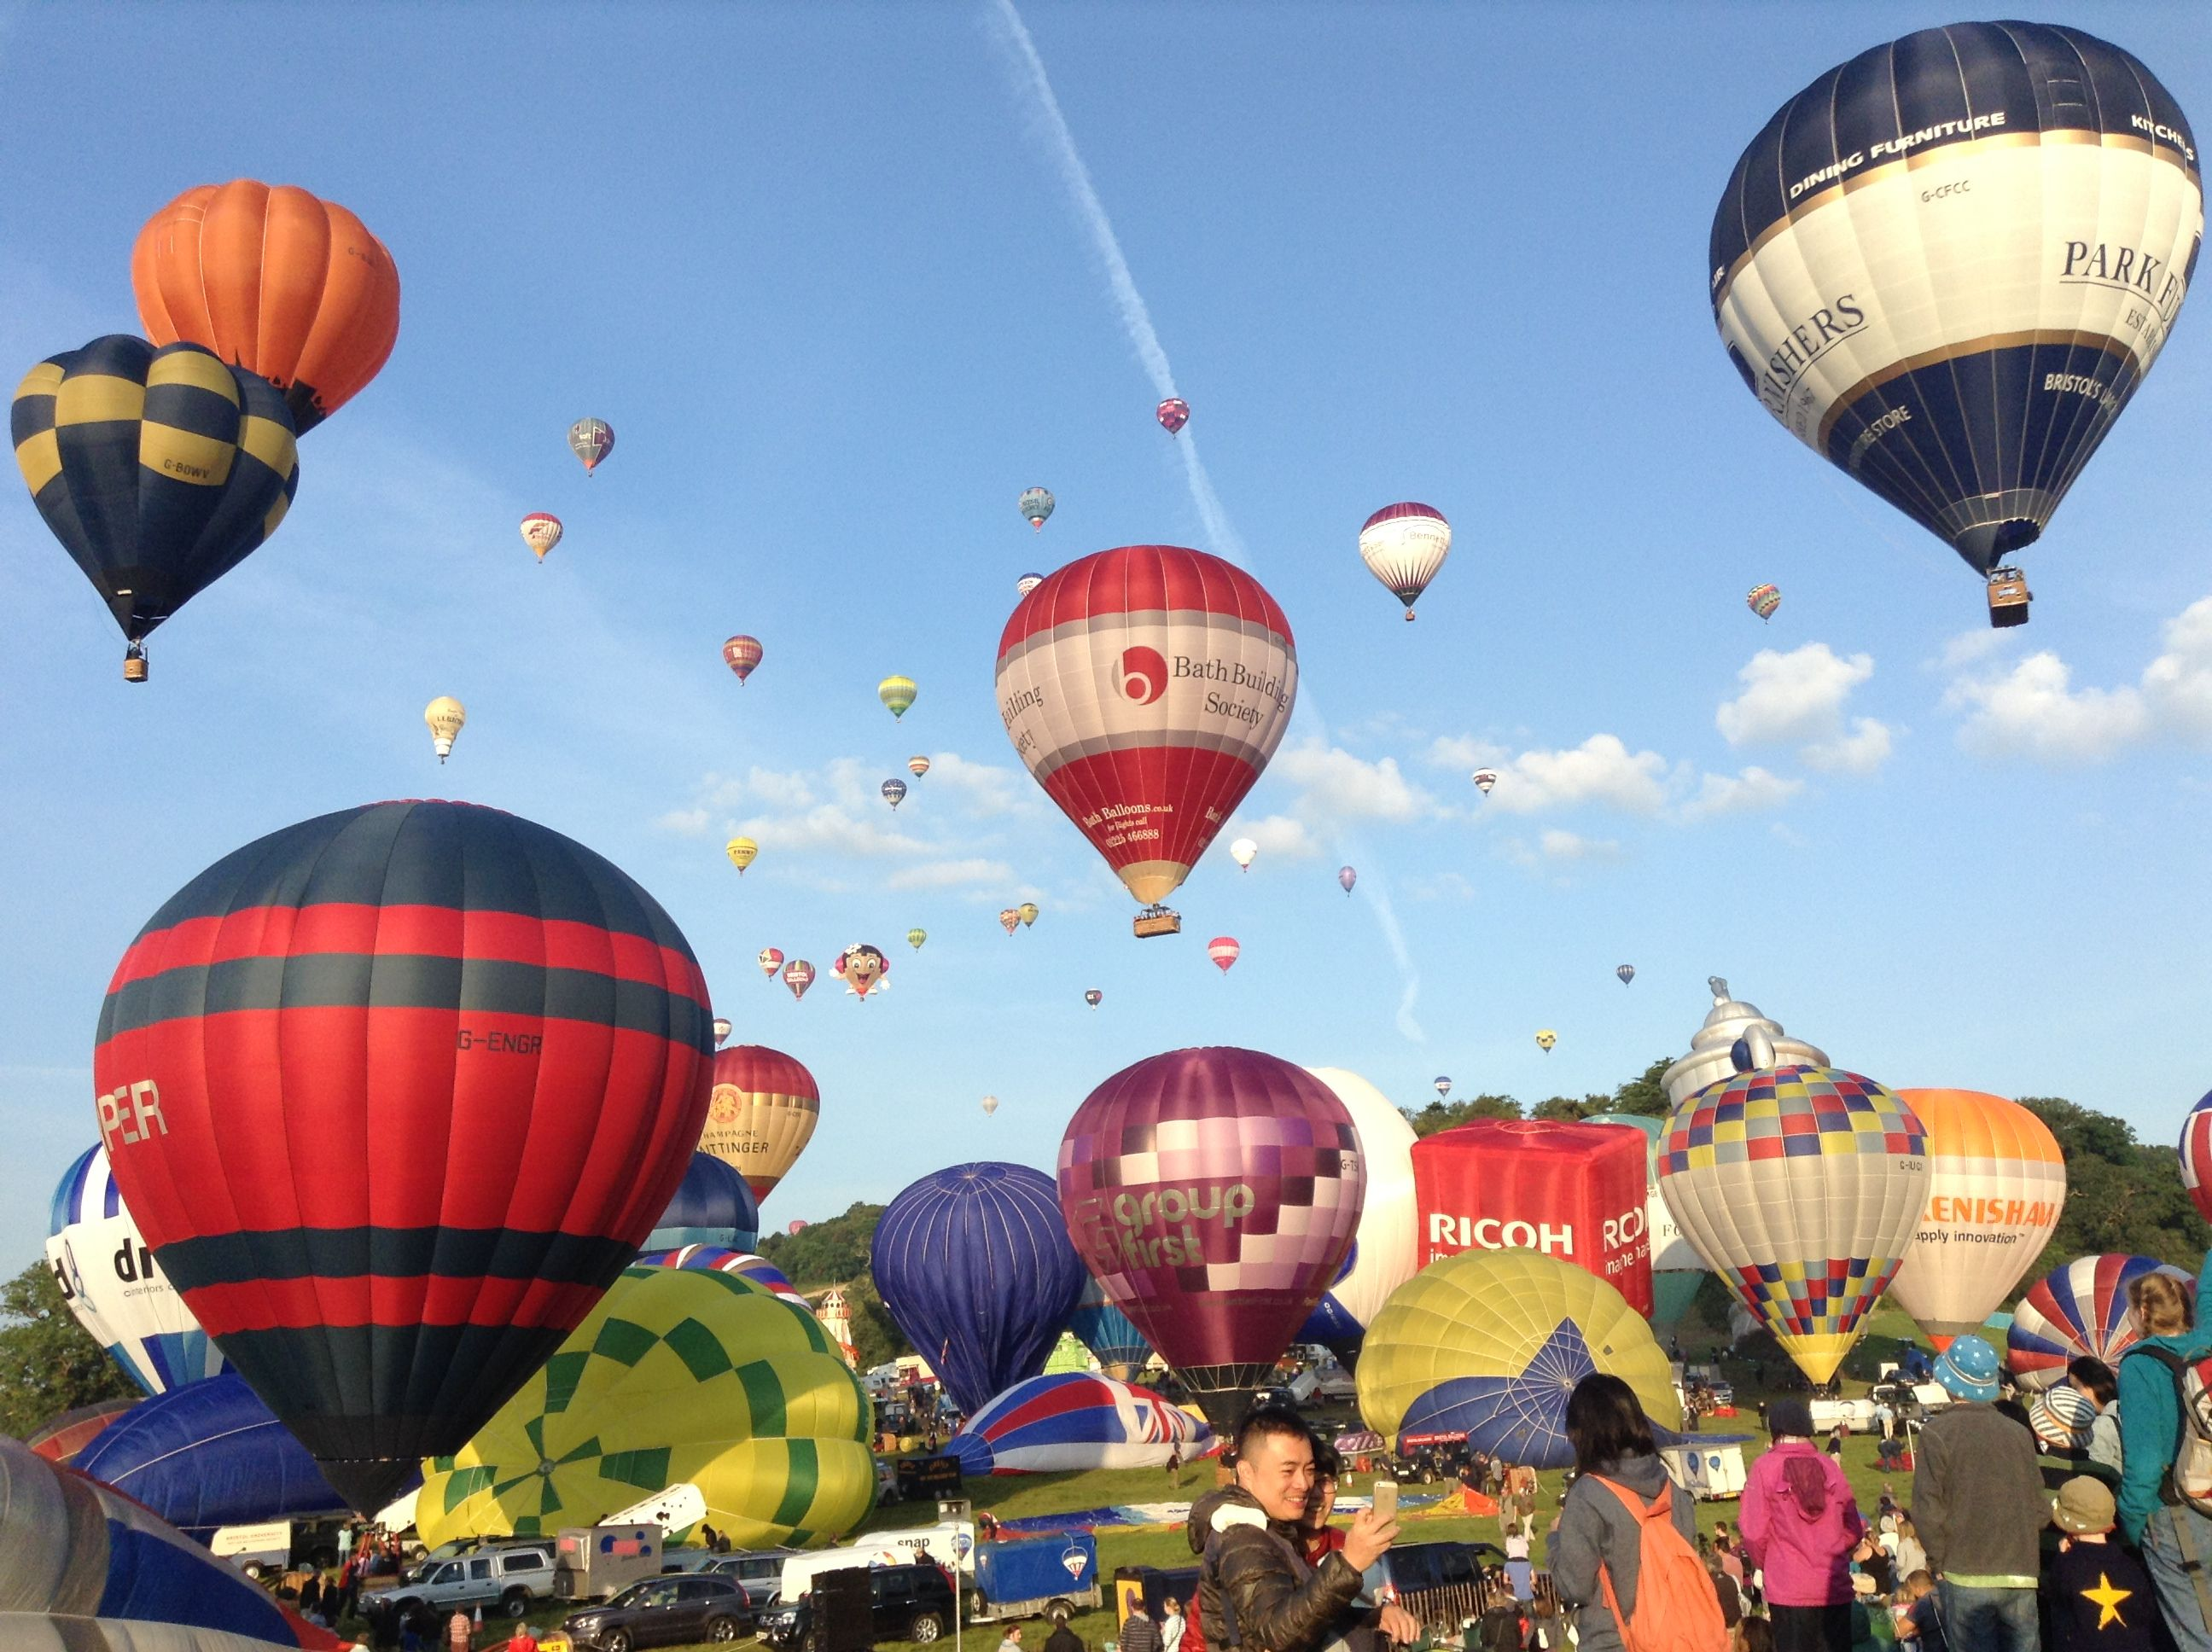 Hot air balloons Bristol balloon festival 2014 (With